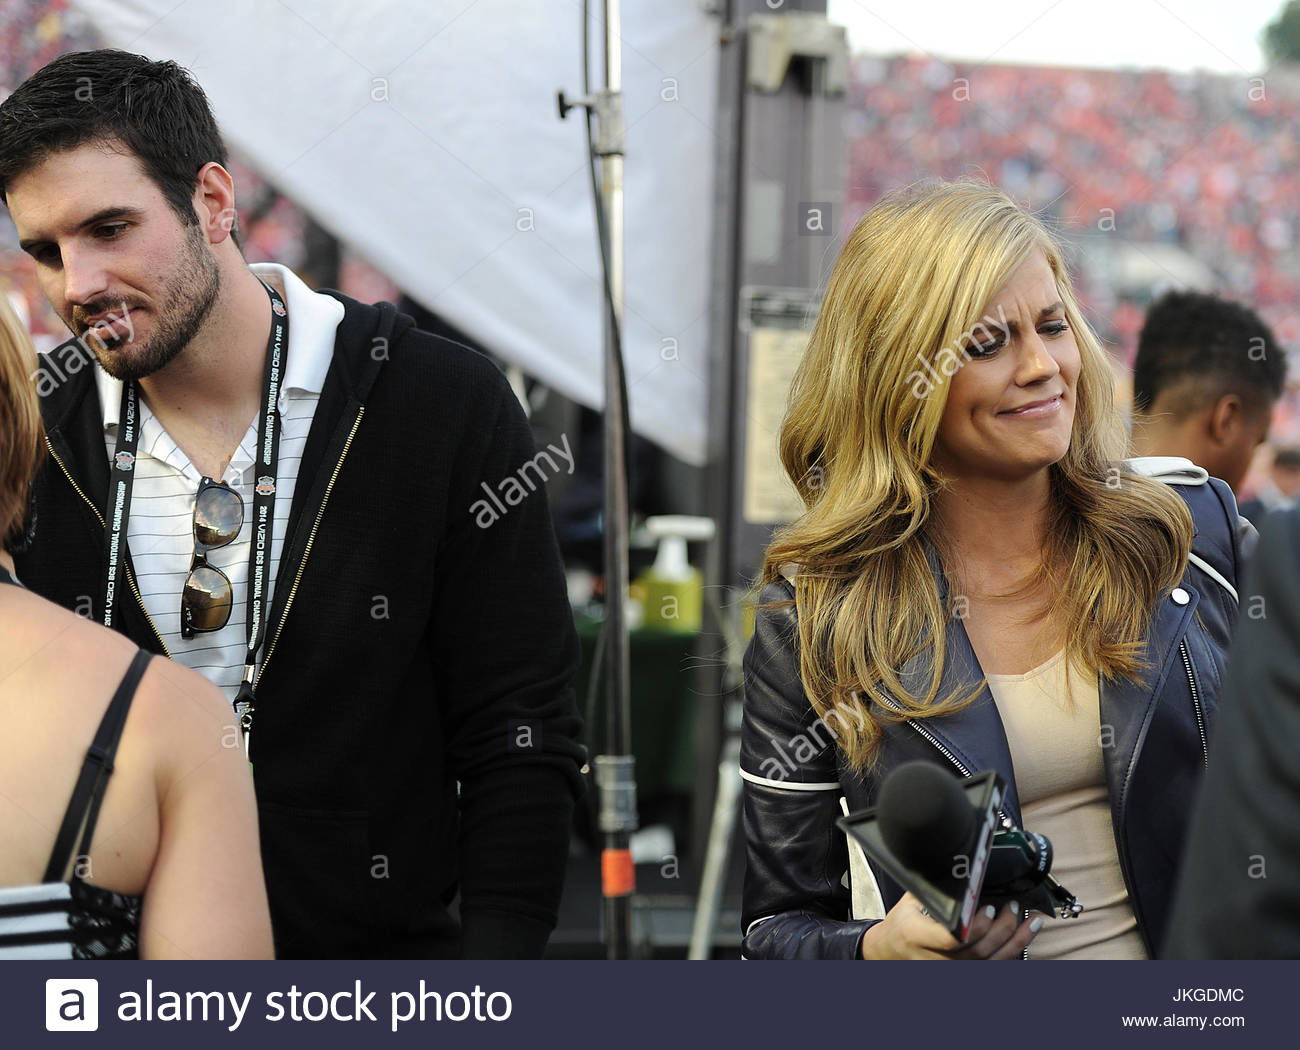 Christian Ponder And Samantha Steele Ponder Espn Field Reporter